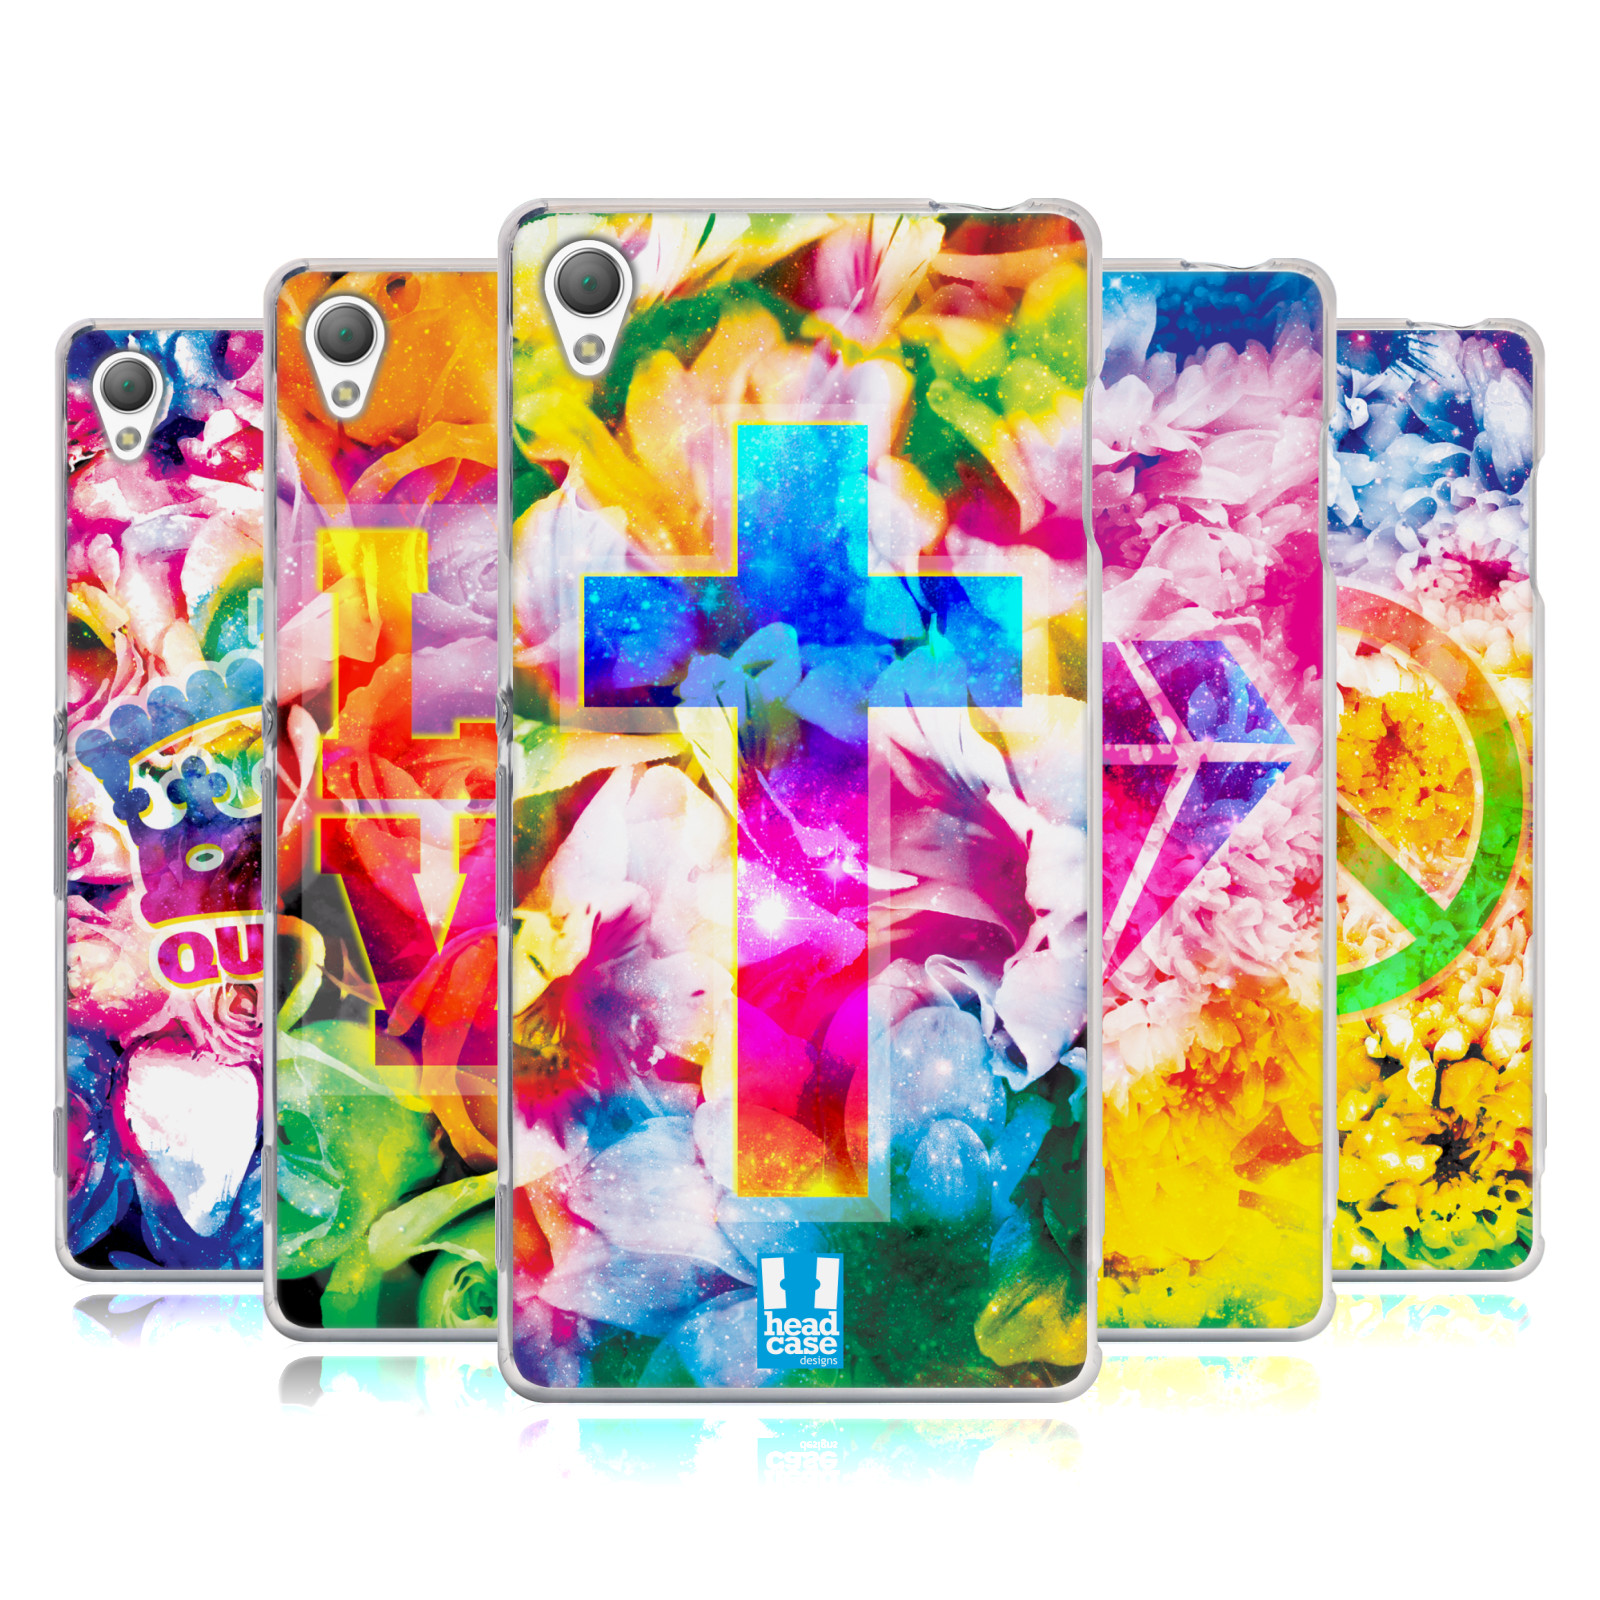 HEAD-CASE-DESIGNS-PSYCHEDELIC-FLORALS-SOFT-GEL-CASE-FOR-SONY-PHONES-1